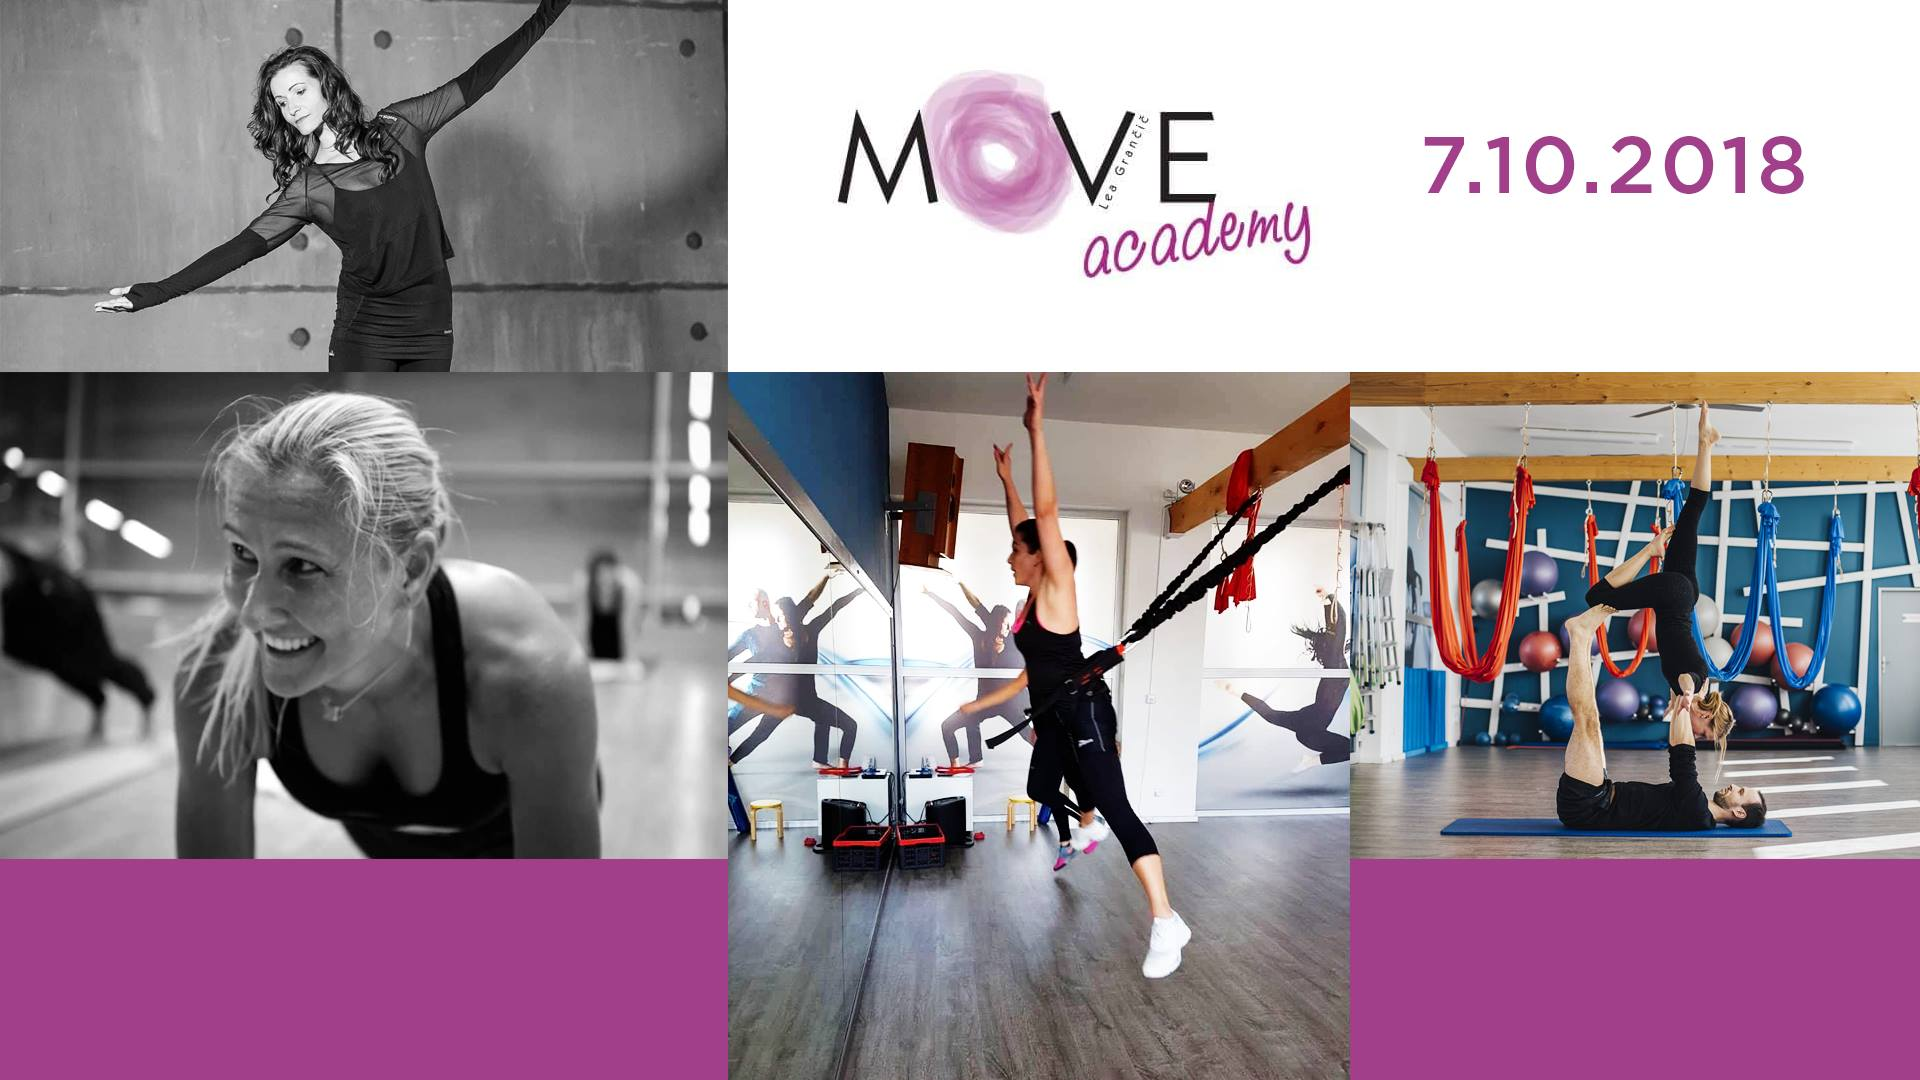 Inspiration day s Vigeom a Move Academy